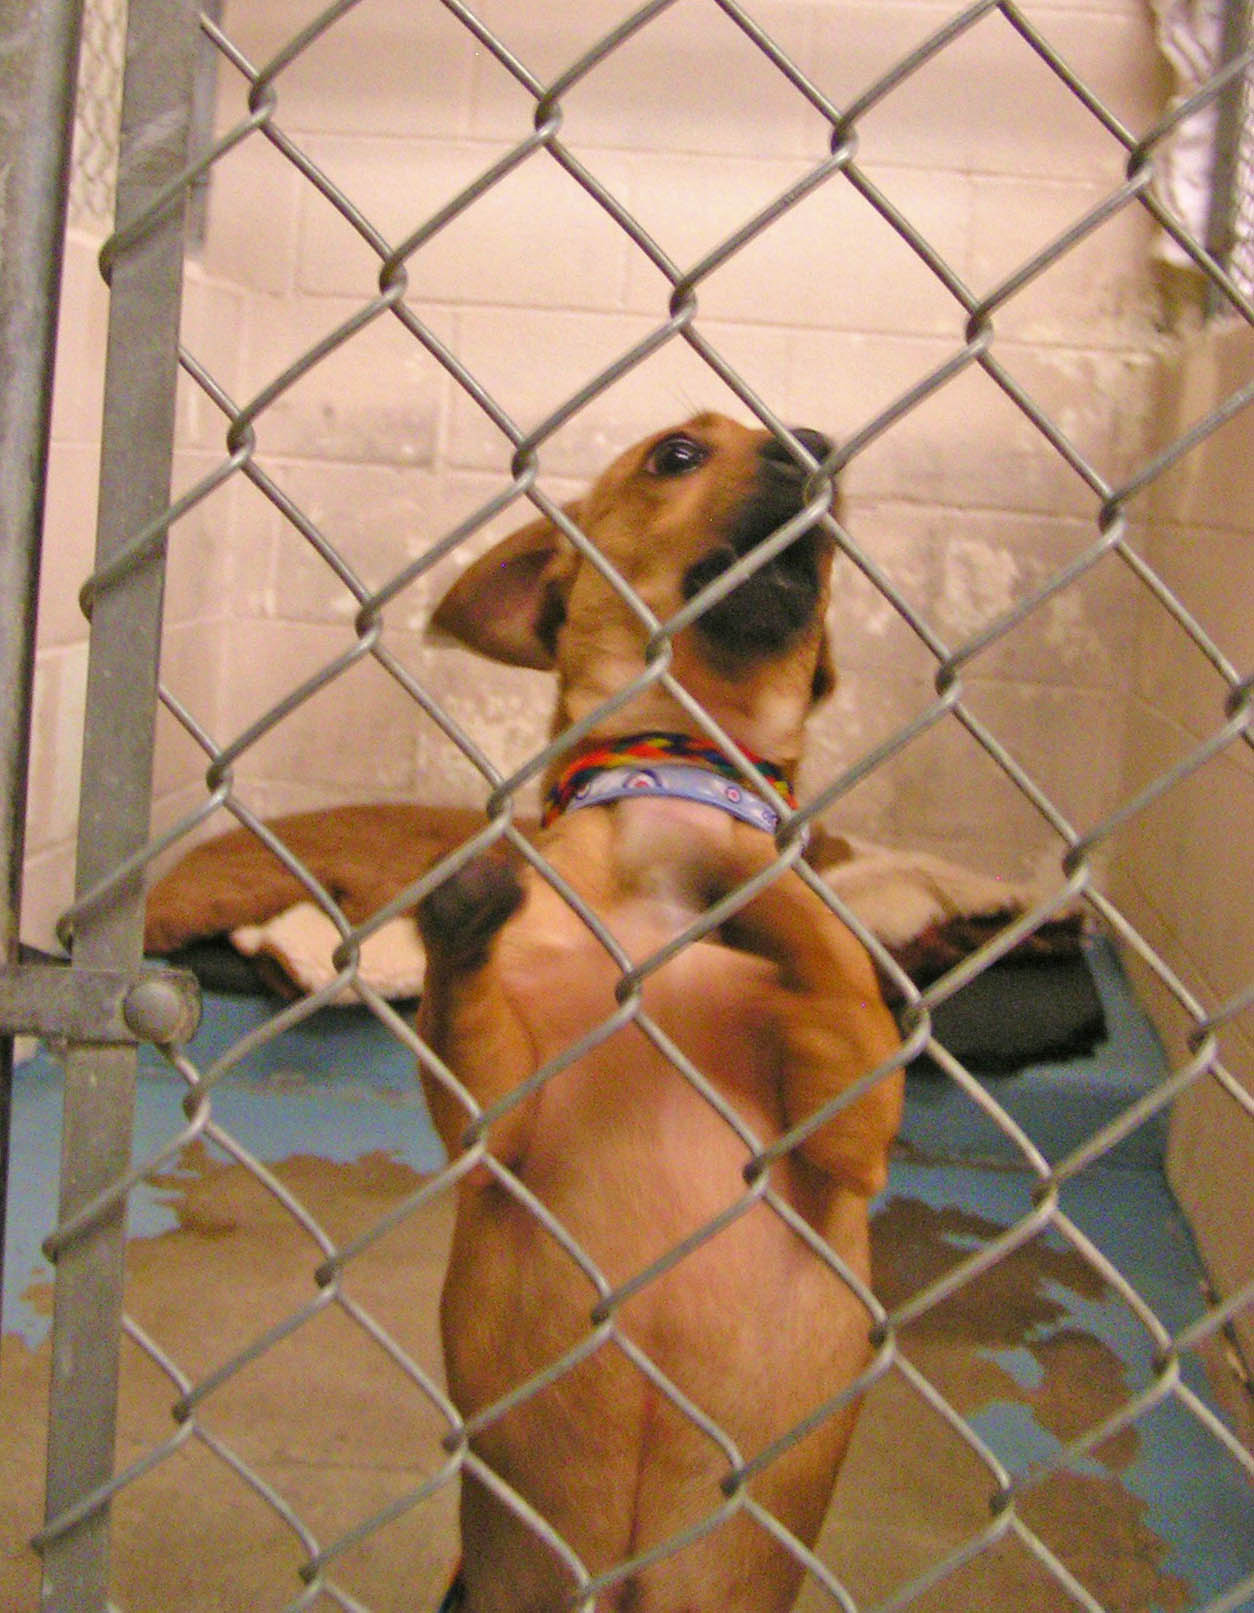 The mini Mighty doxie on the day we met at an Oregon animal shelter January 21, 2011